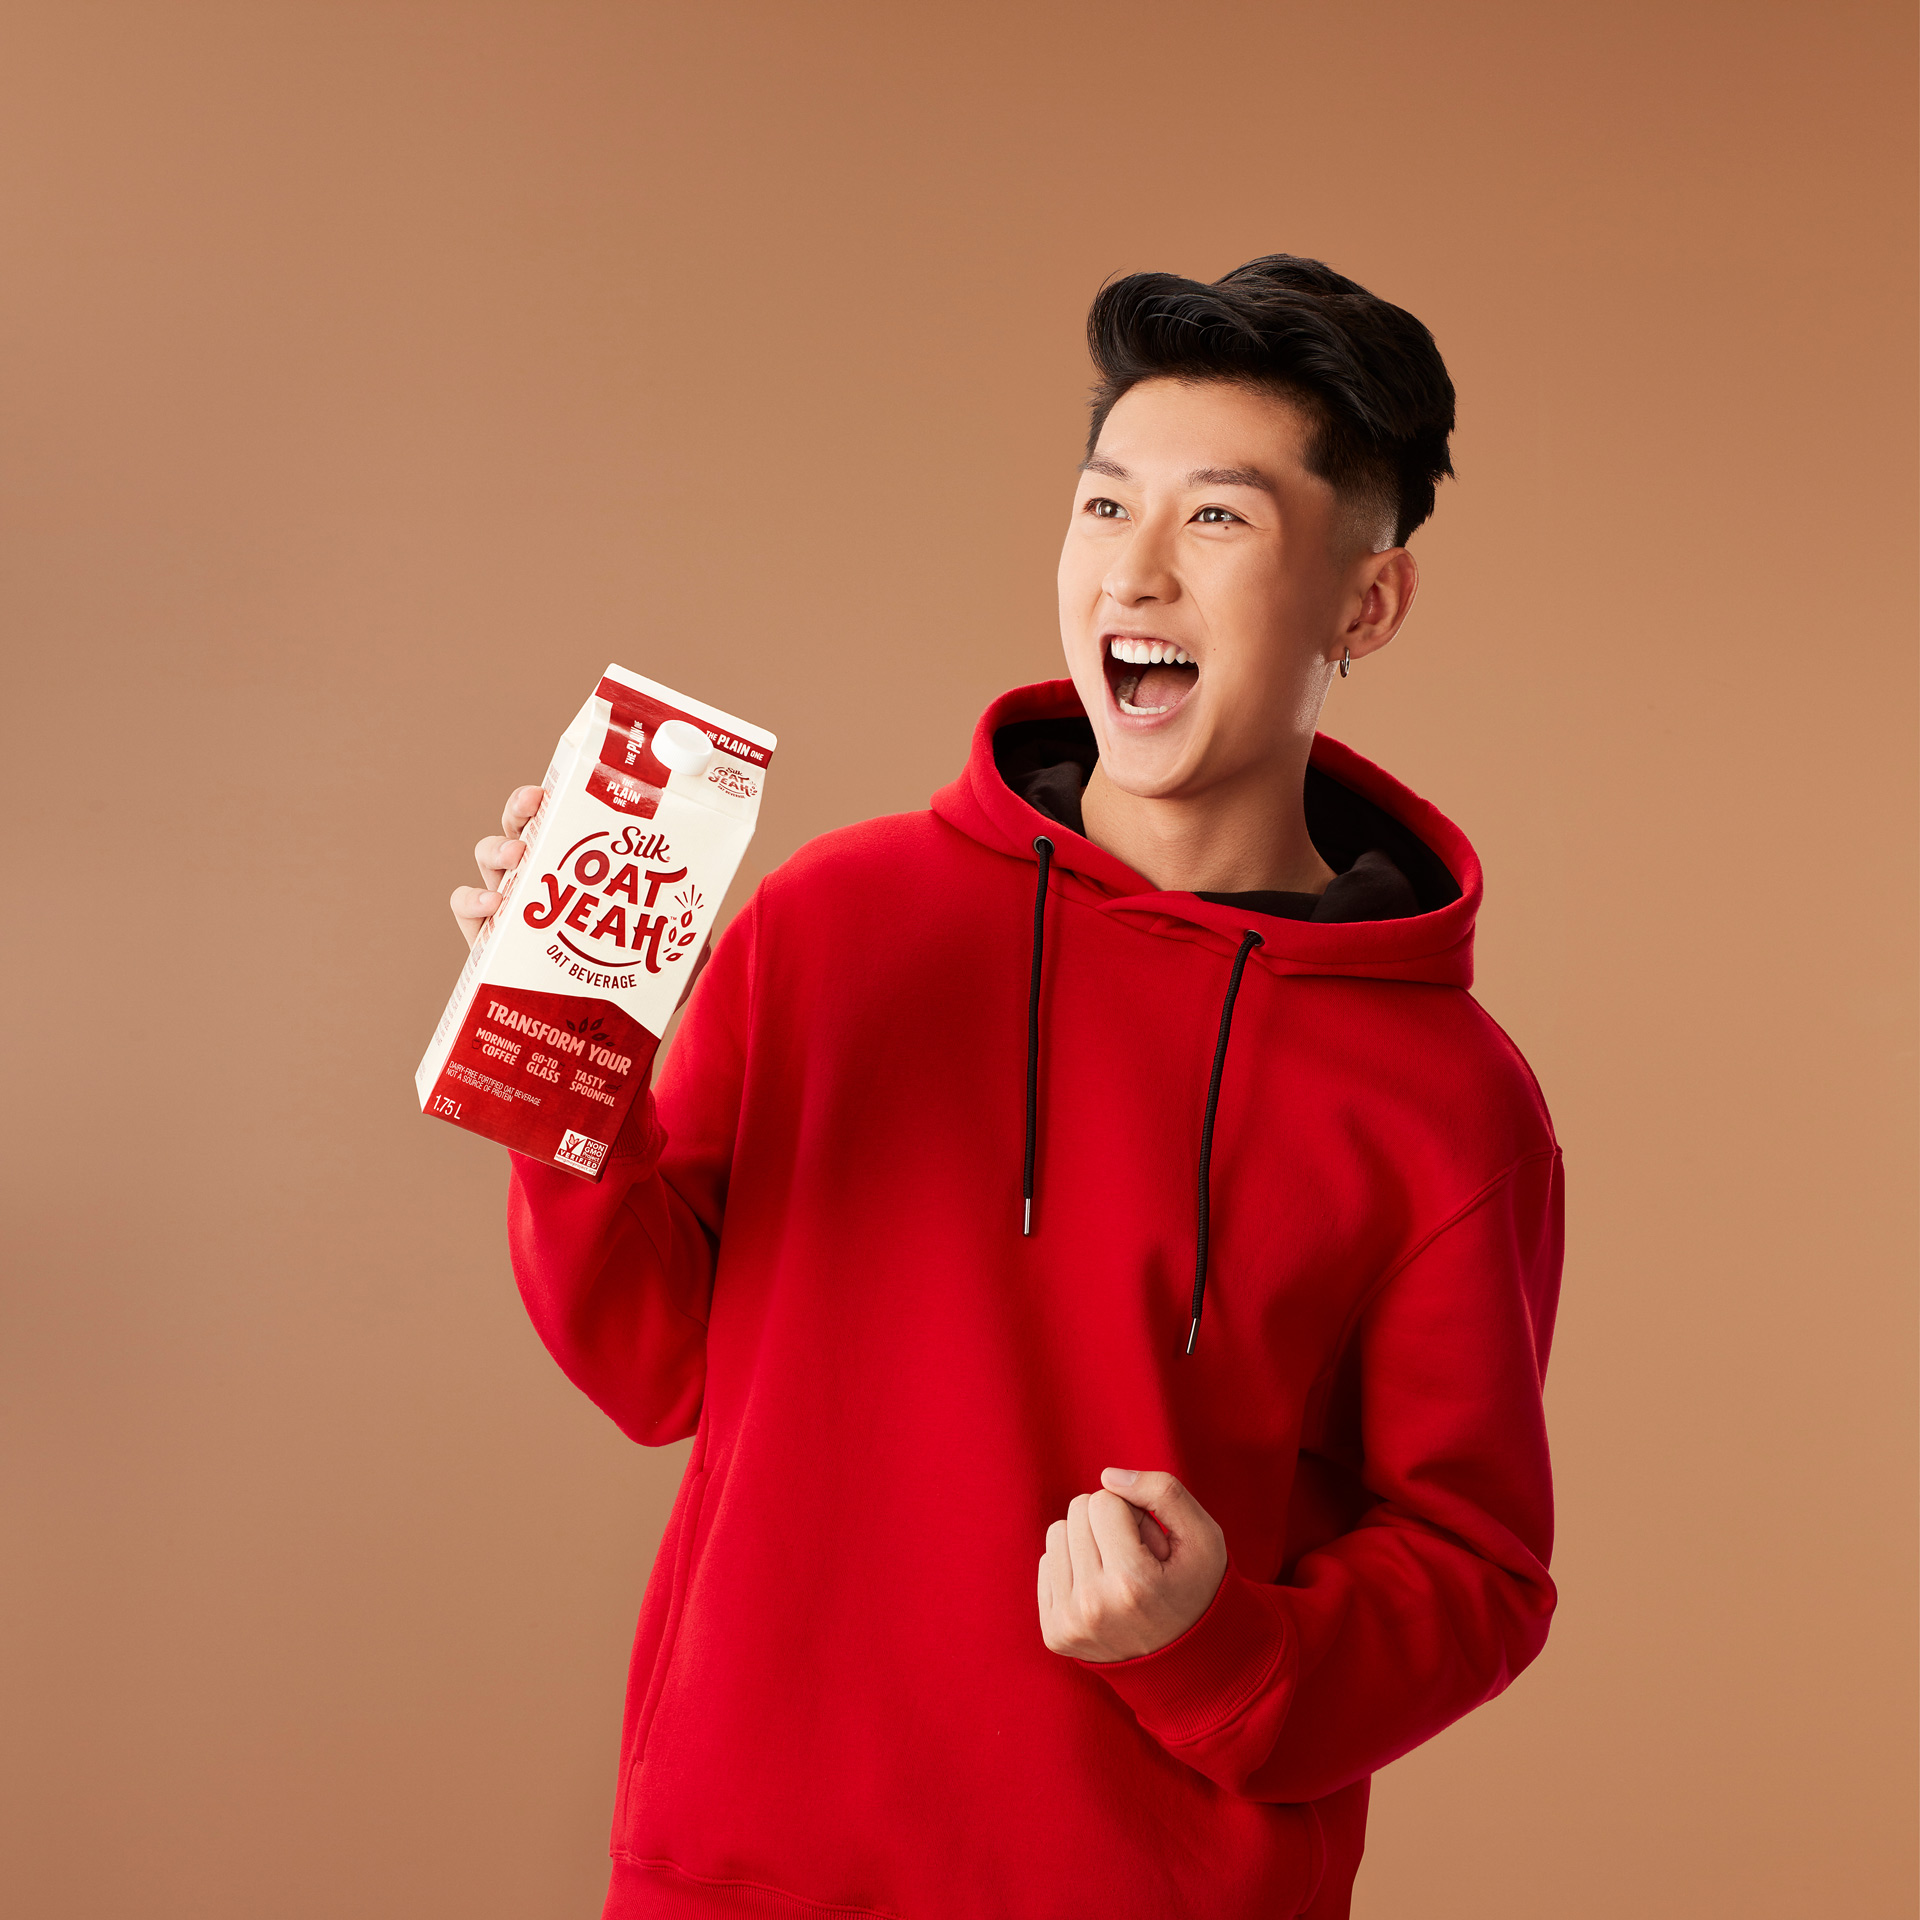 chinese man mouthing yeah holding oat milk carton wearing bright red hoodie by Simon Duhamel for Oat Yeah Silk and Carl agency